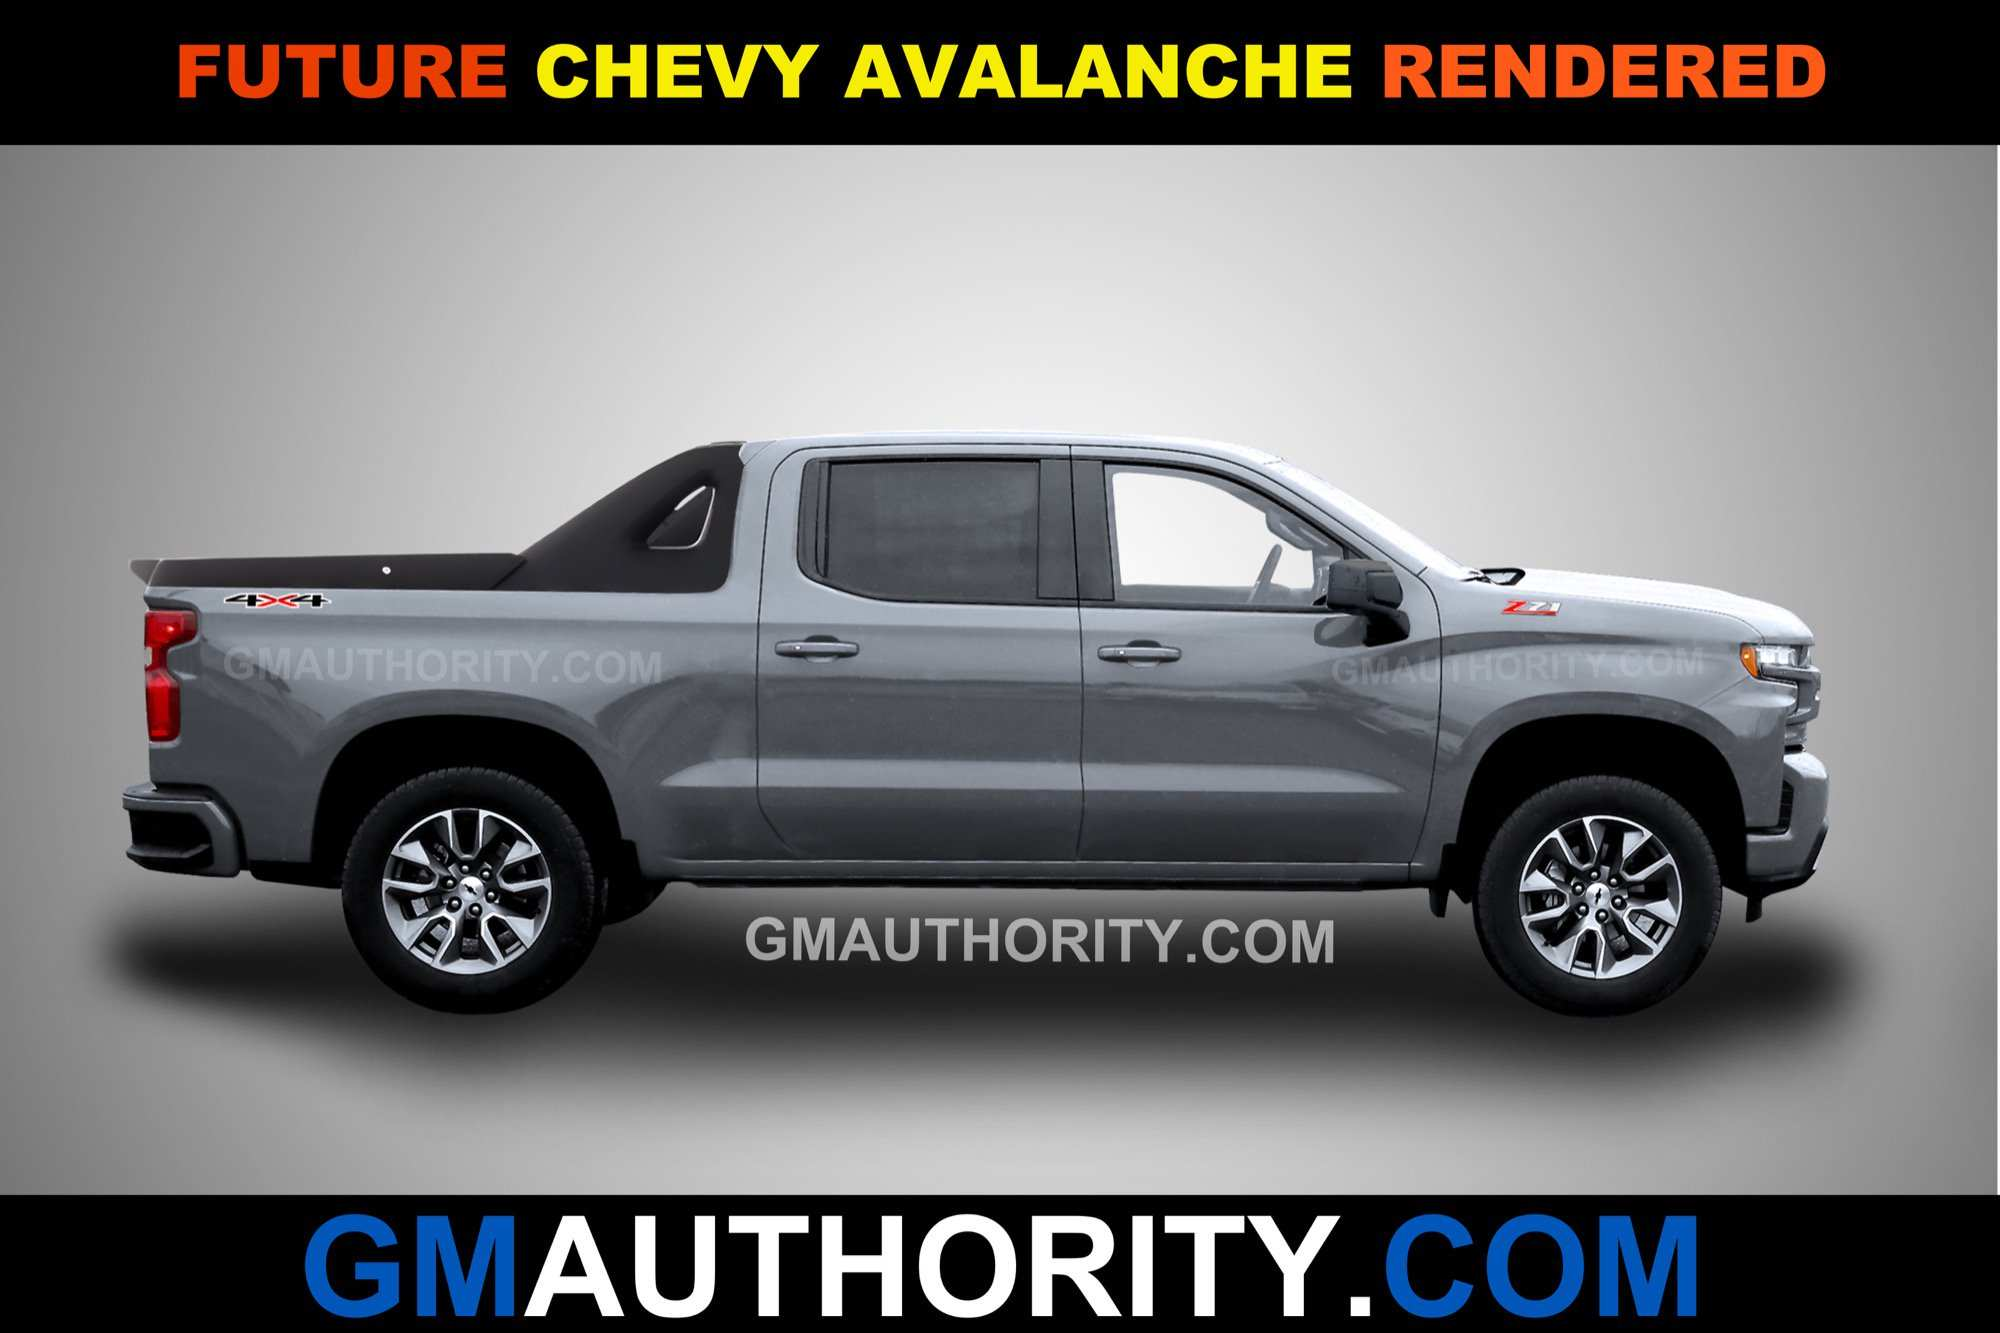 46 Gallery of Chevy Avalanche Concept History with Chevy Avalanche Concept